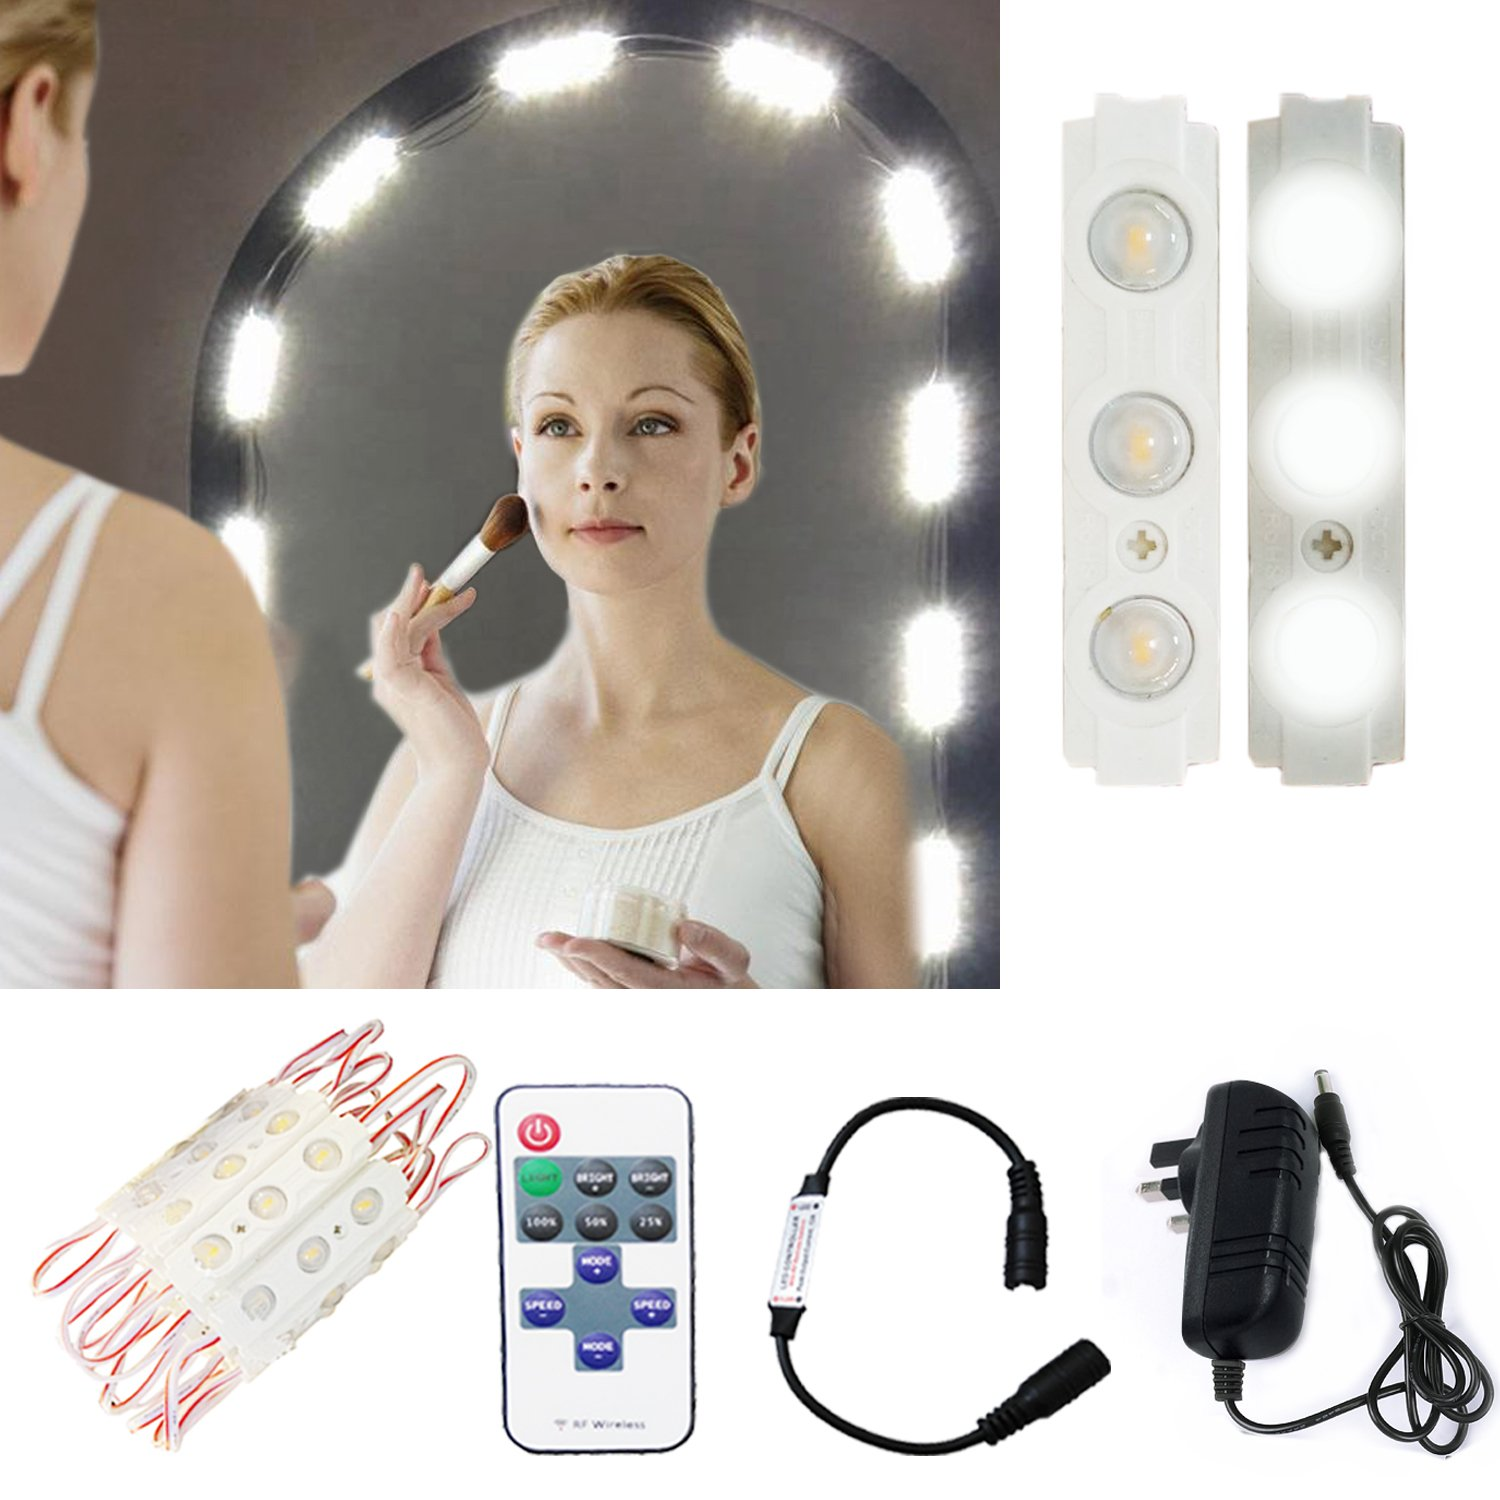 Hollywood Make-up Vanity Mirror Light,60 Leds 9.8Ft Bathroom Vanity Light Kit for DIY Cosmetic Make Up Mirror with Remote,Dimmer & Switch Power Supply UK (Mirror Not Included) Windy5